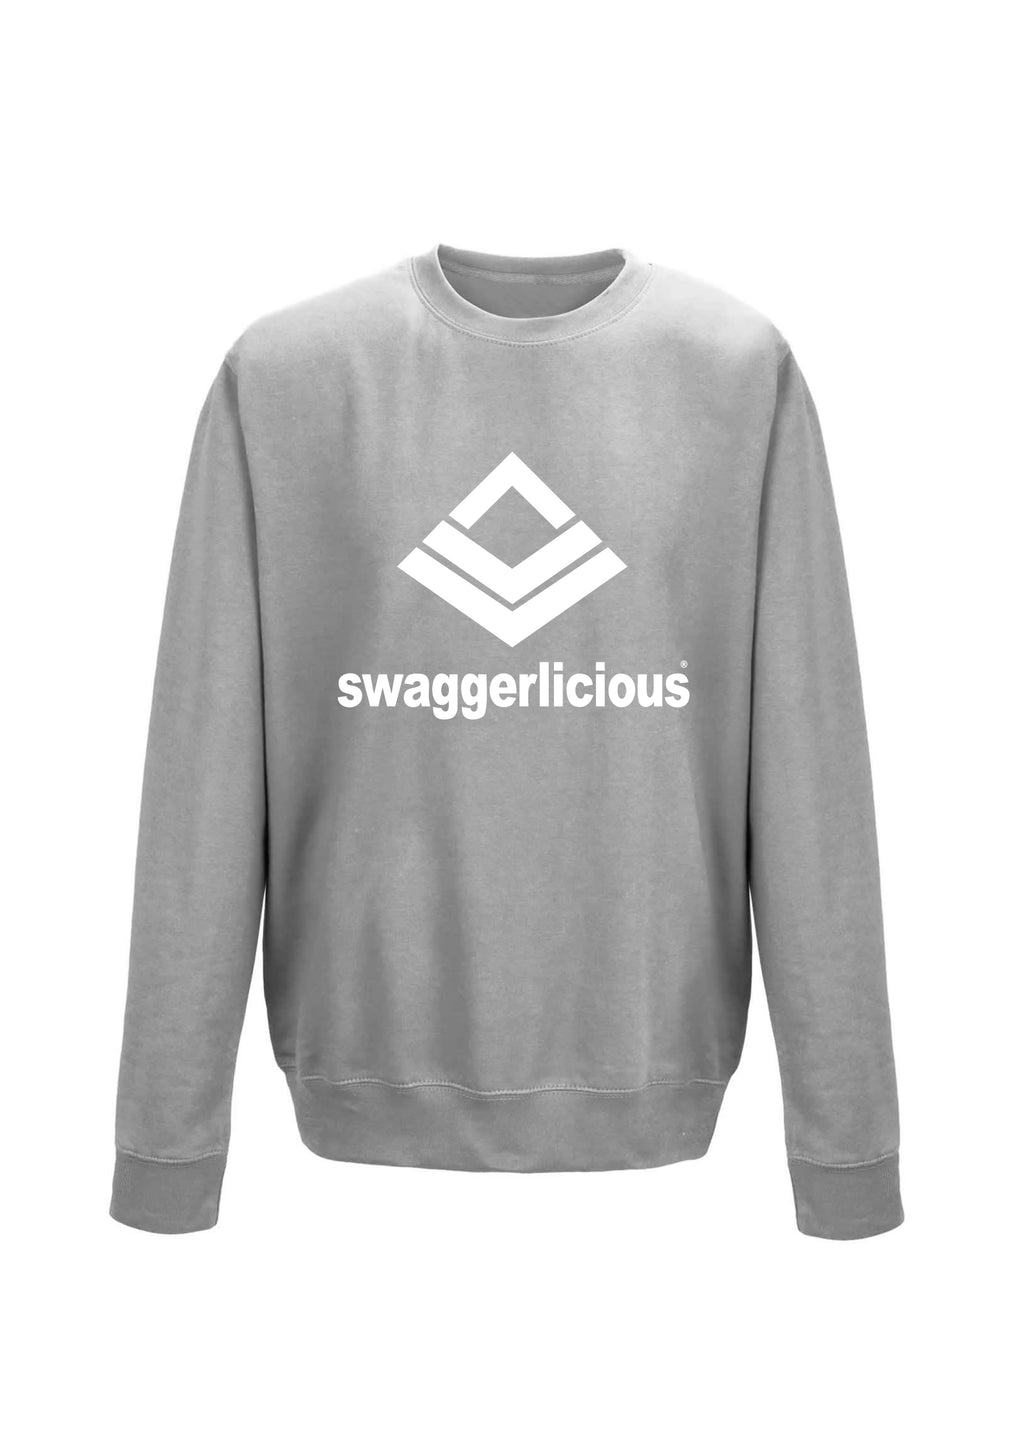 Swaggerlicious Classic Sports Grey Sweatshirt - swaggerlicious-clothing.com